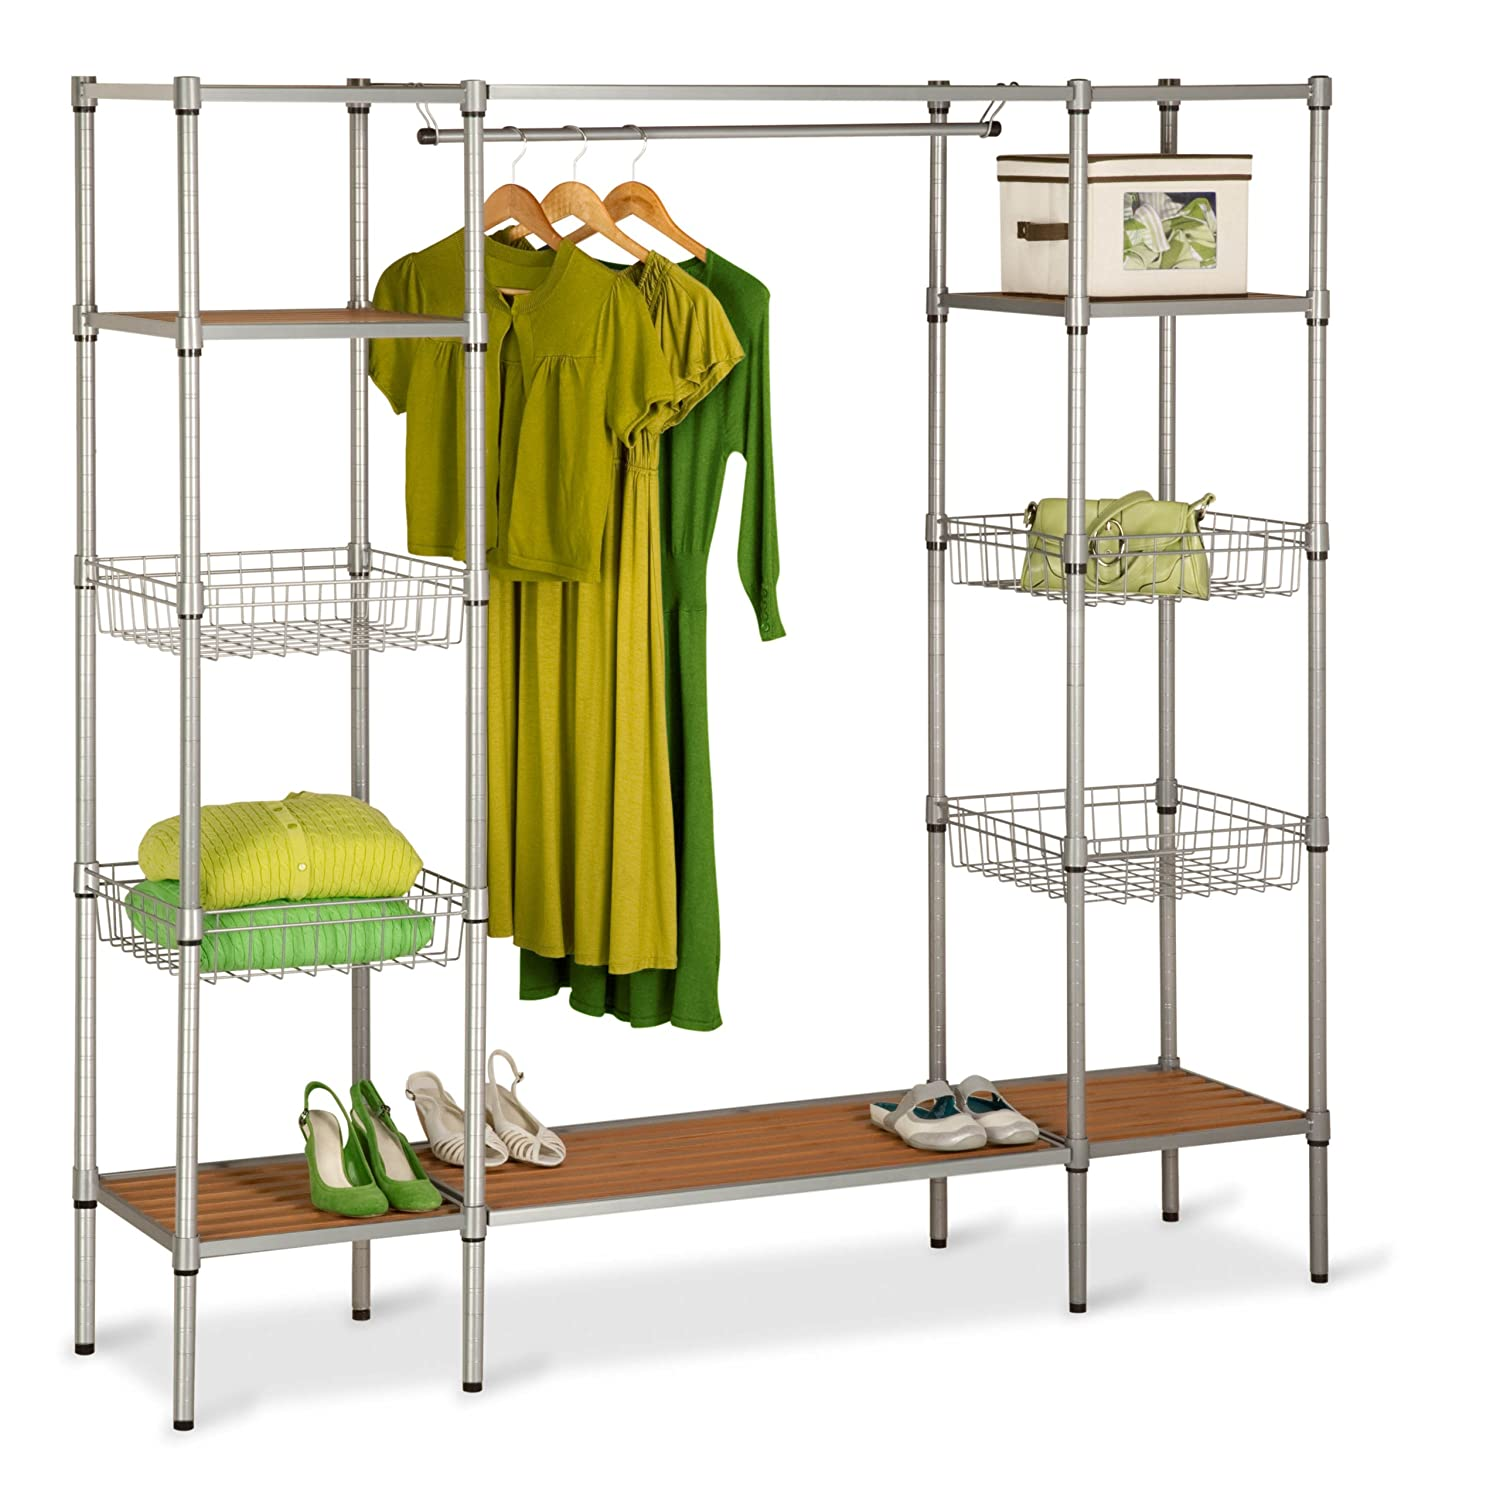 wood in portable the ideas you wall dividers systems shelving storage closet system size of organizer choosing walk full bedroom furniture own your design organizers for best